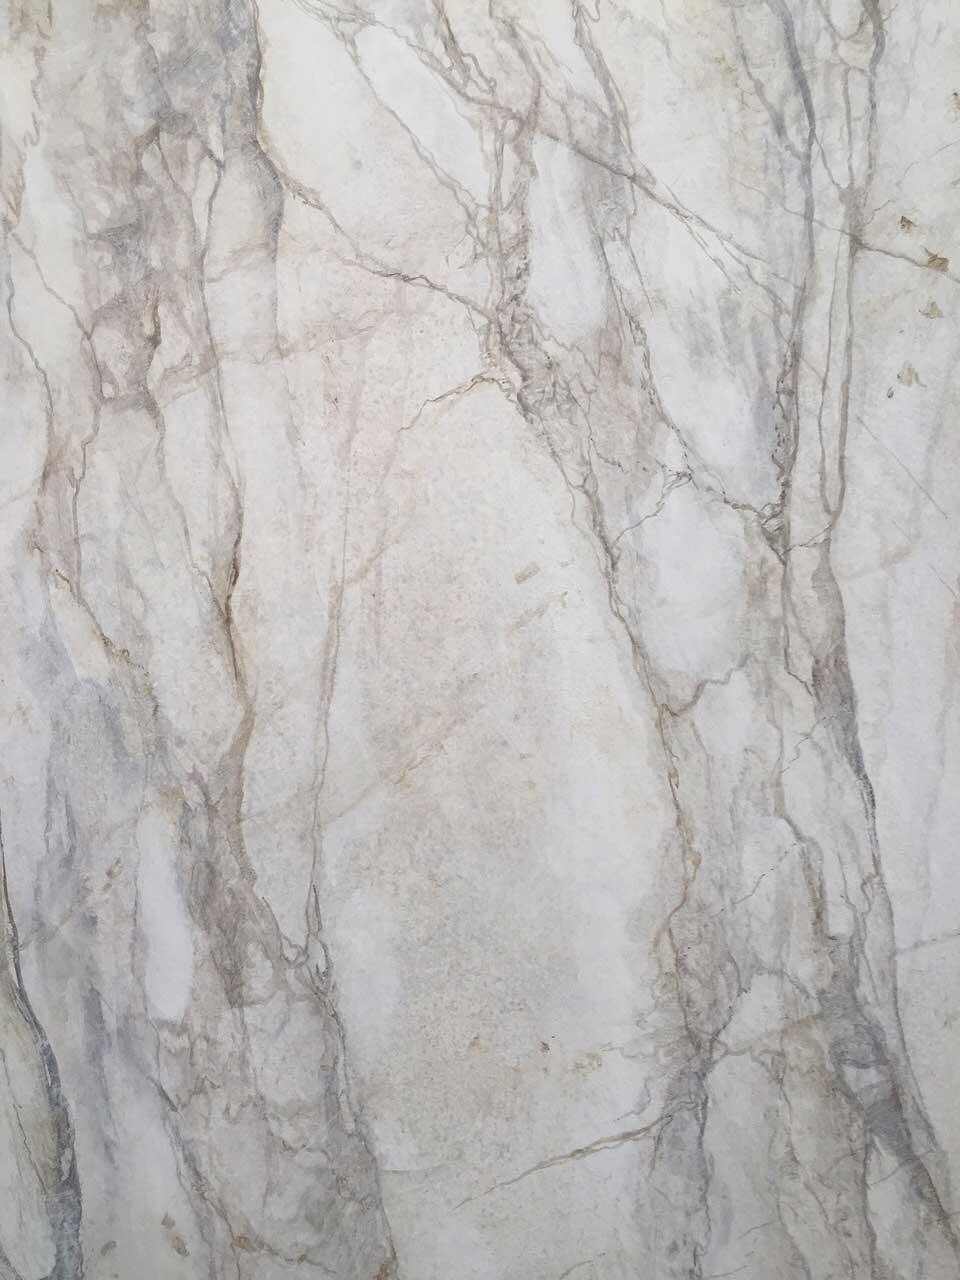 Hand Painted Faux Marble Design For Nina Campbell S New Wall Paper Collection Henry Van Der Vijver